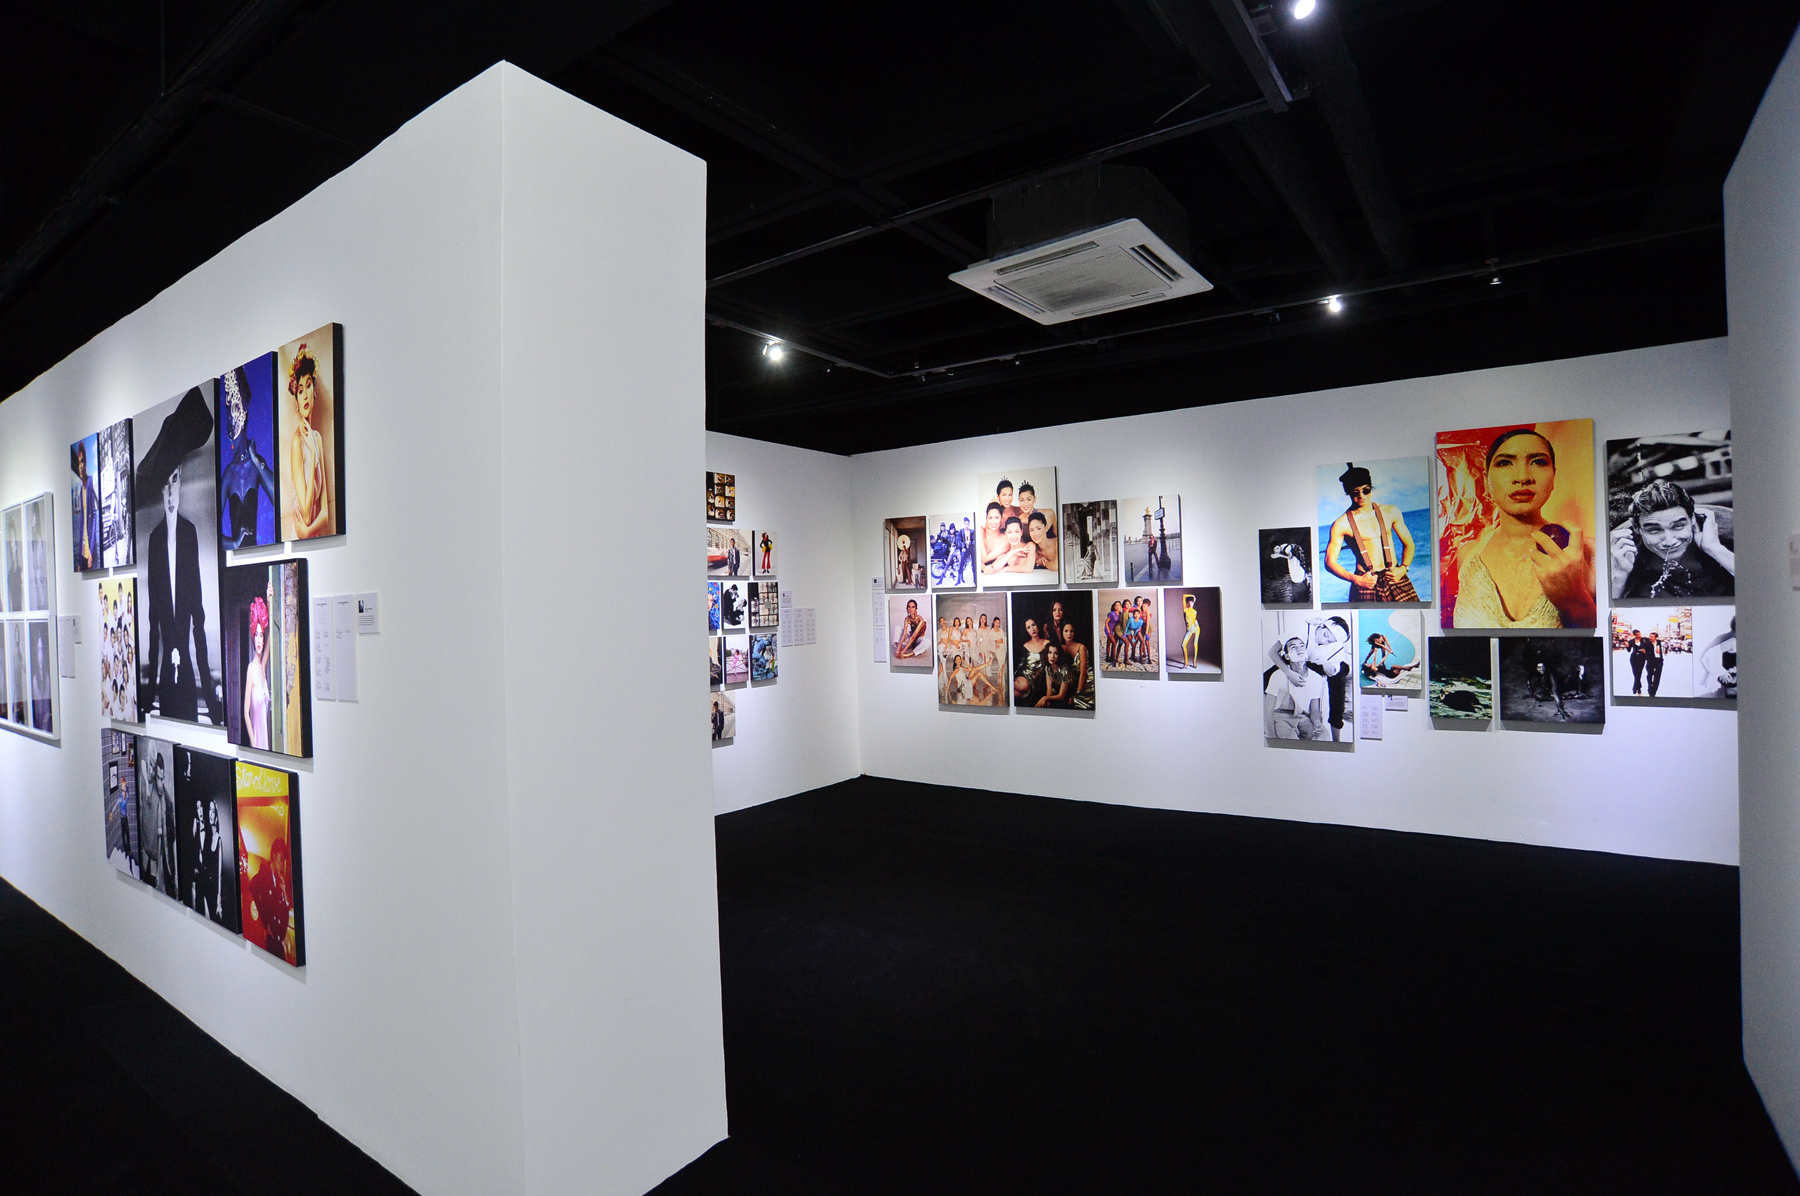 "Exhibition ""Visionaries: 40 Years of Thai Fashion through the Eyes Photographers"" to celebrate 40th anniversary of Siam Centre and 10th anniversary of Bangkok Fashion Society, in collaboration with Thailand's leading photographers, until October 5, 2014 at Siam Centre"